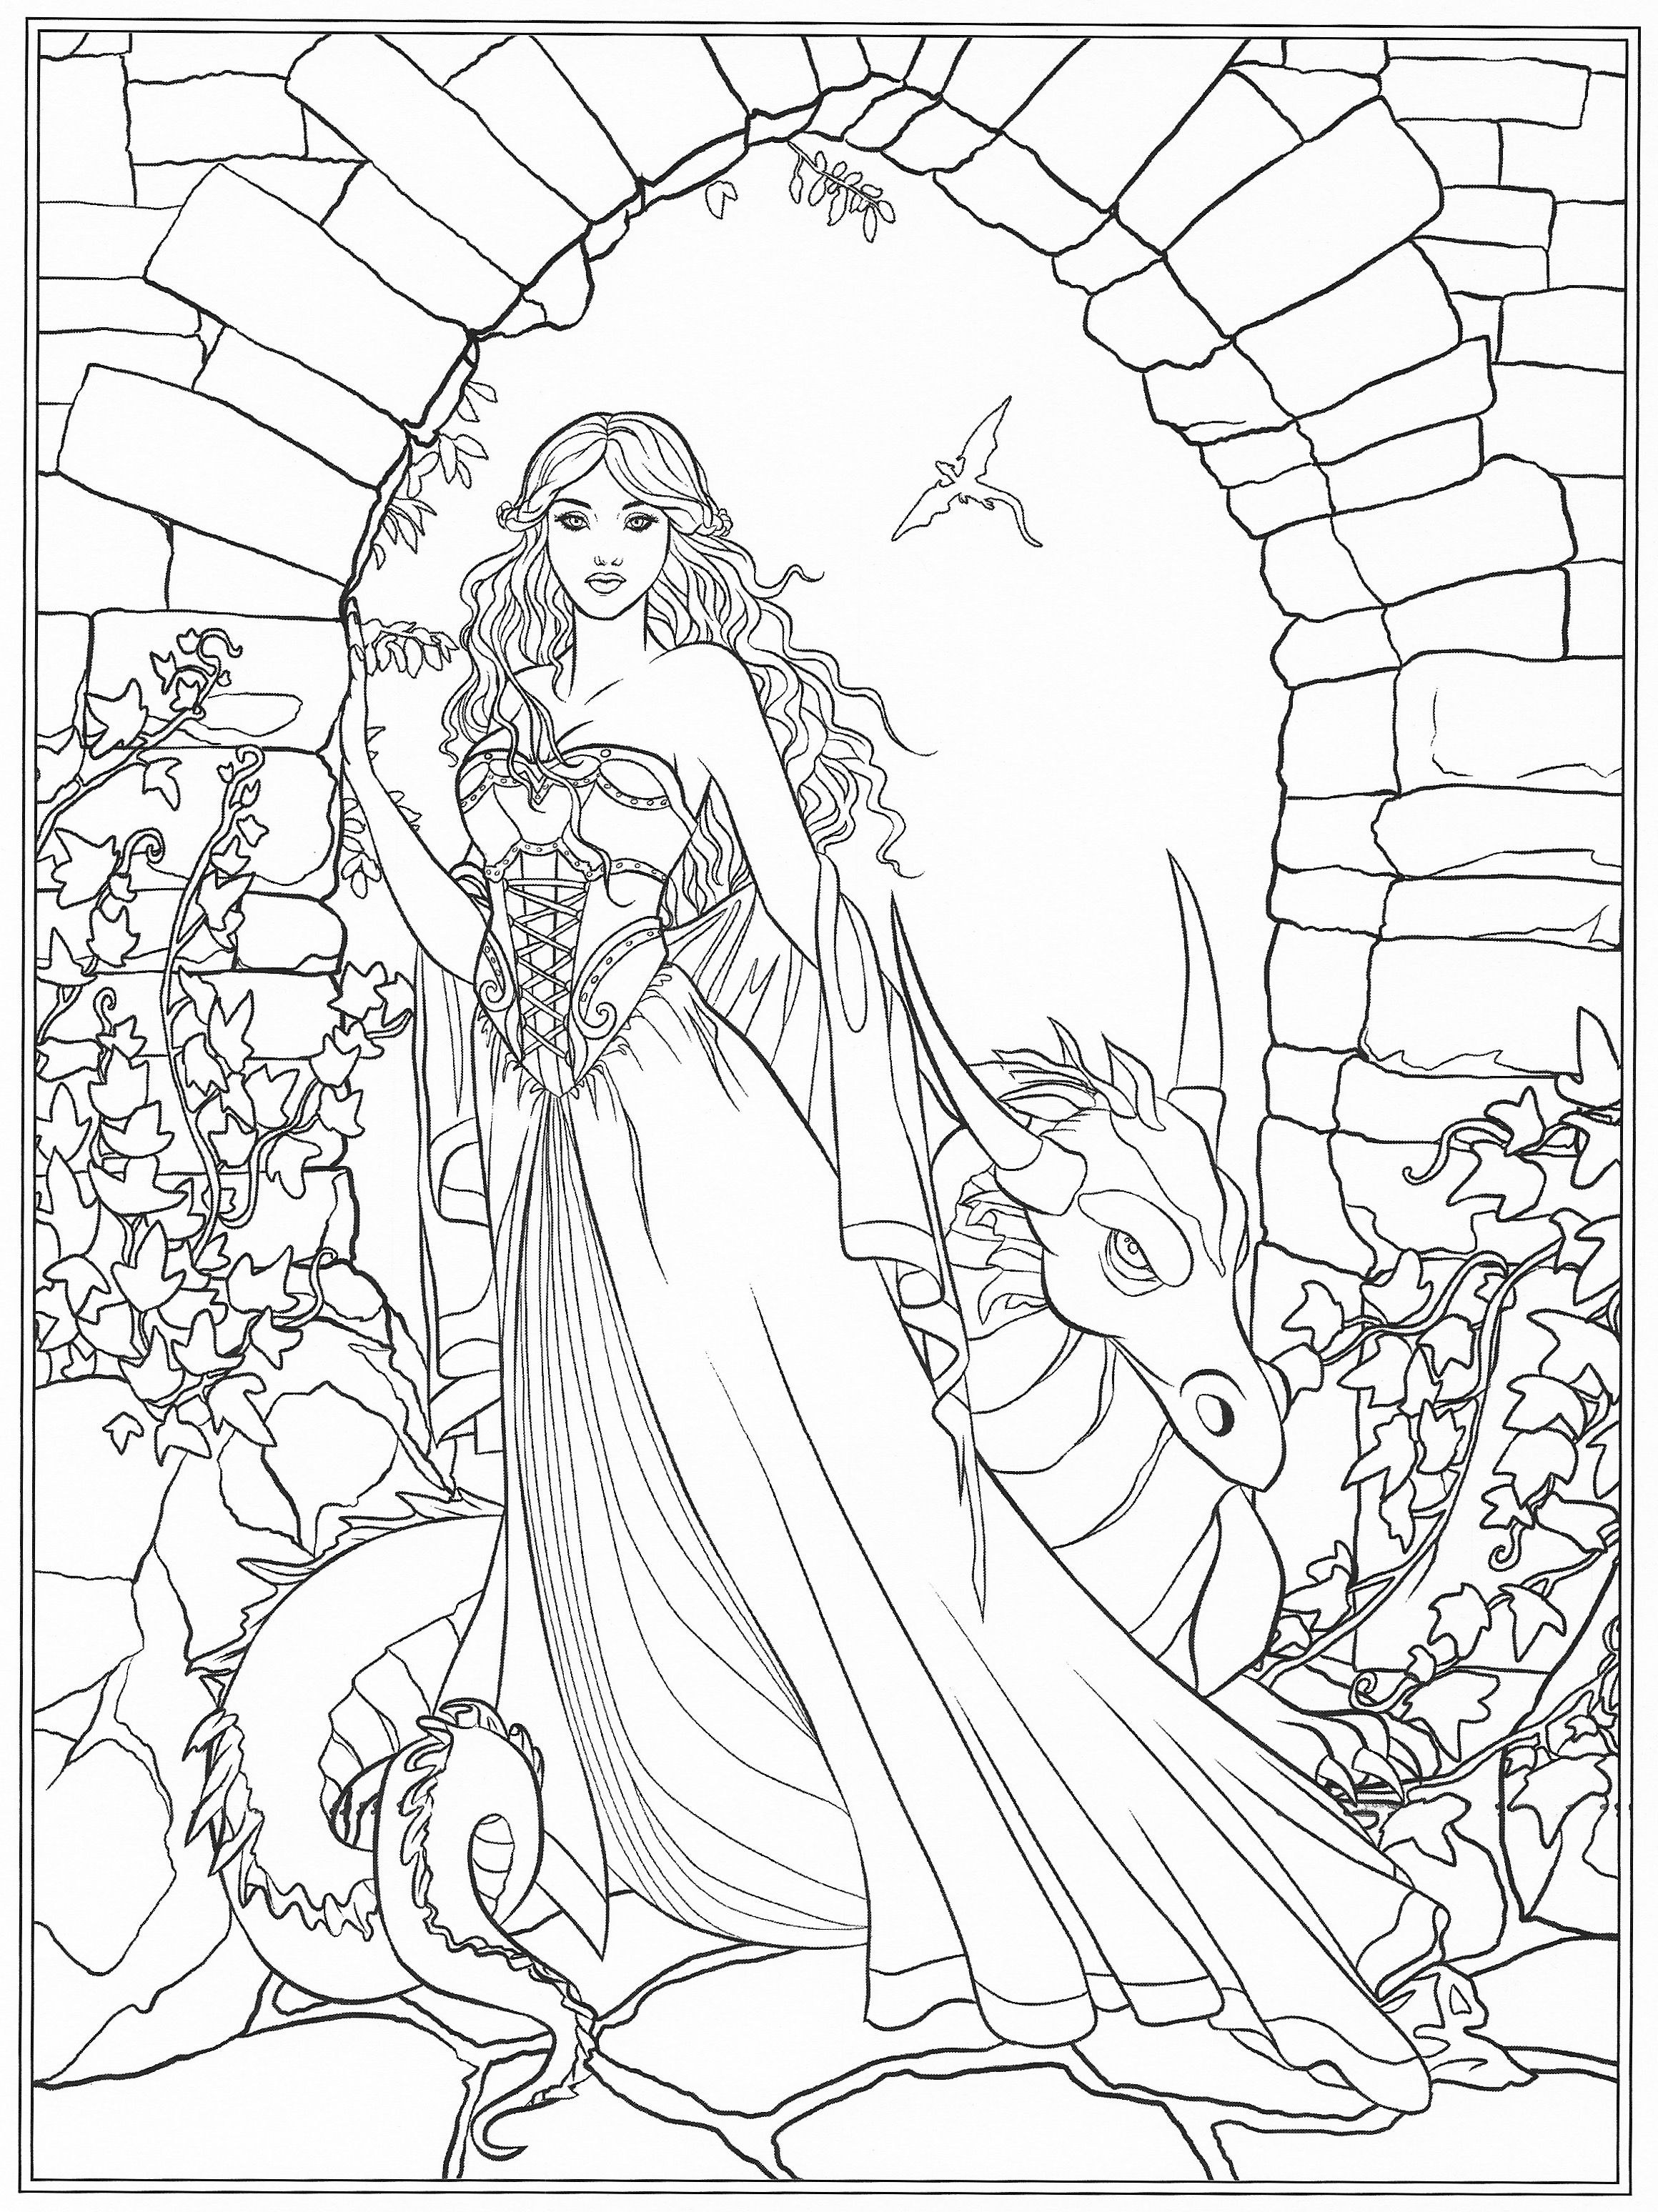 Gothic - Dark Fantasy Coloring Book (Fantasy Art Coloring by ...